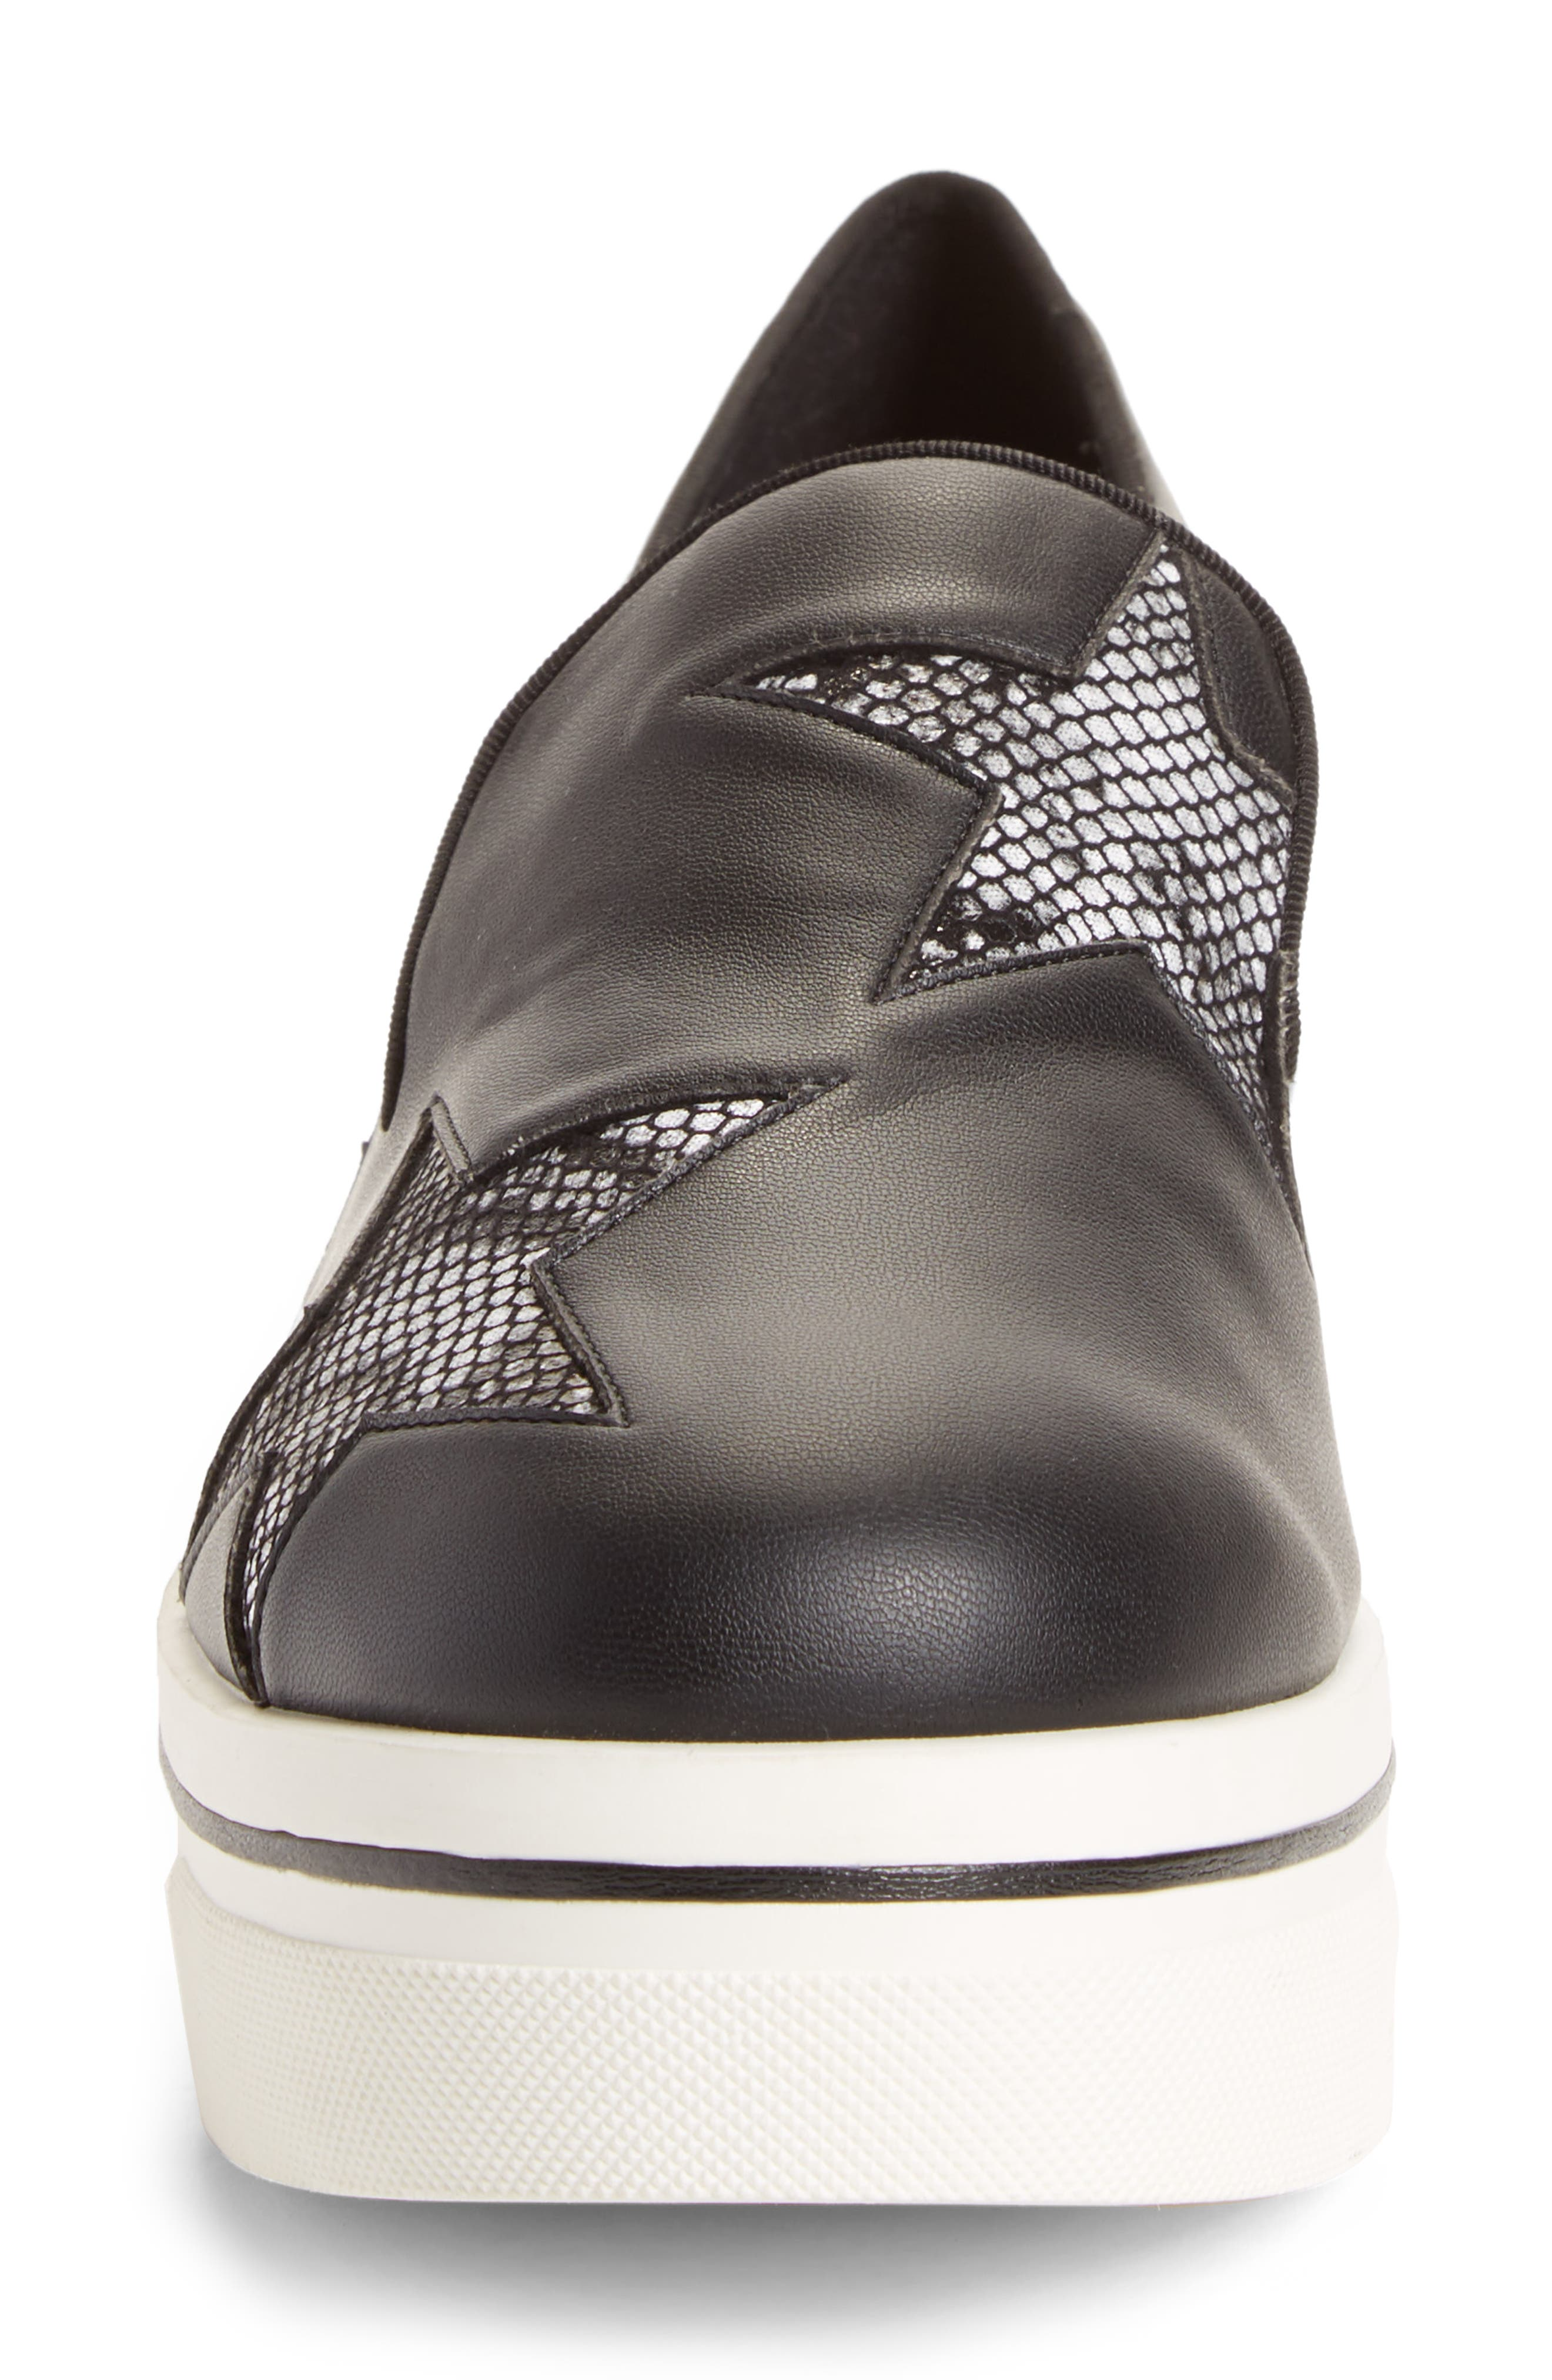 Binx Stars Platform Sneaker,                             Alternate thumbnail 4, color,                             001